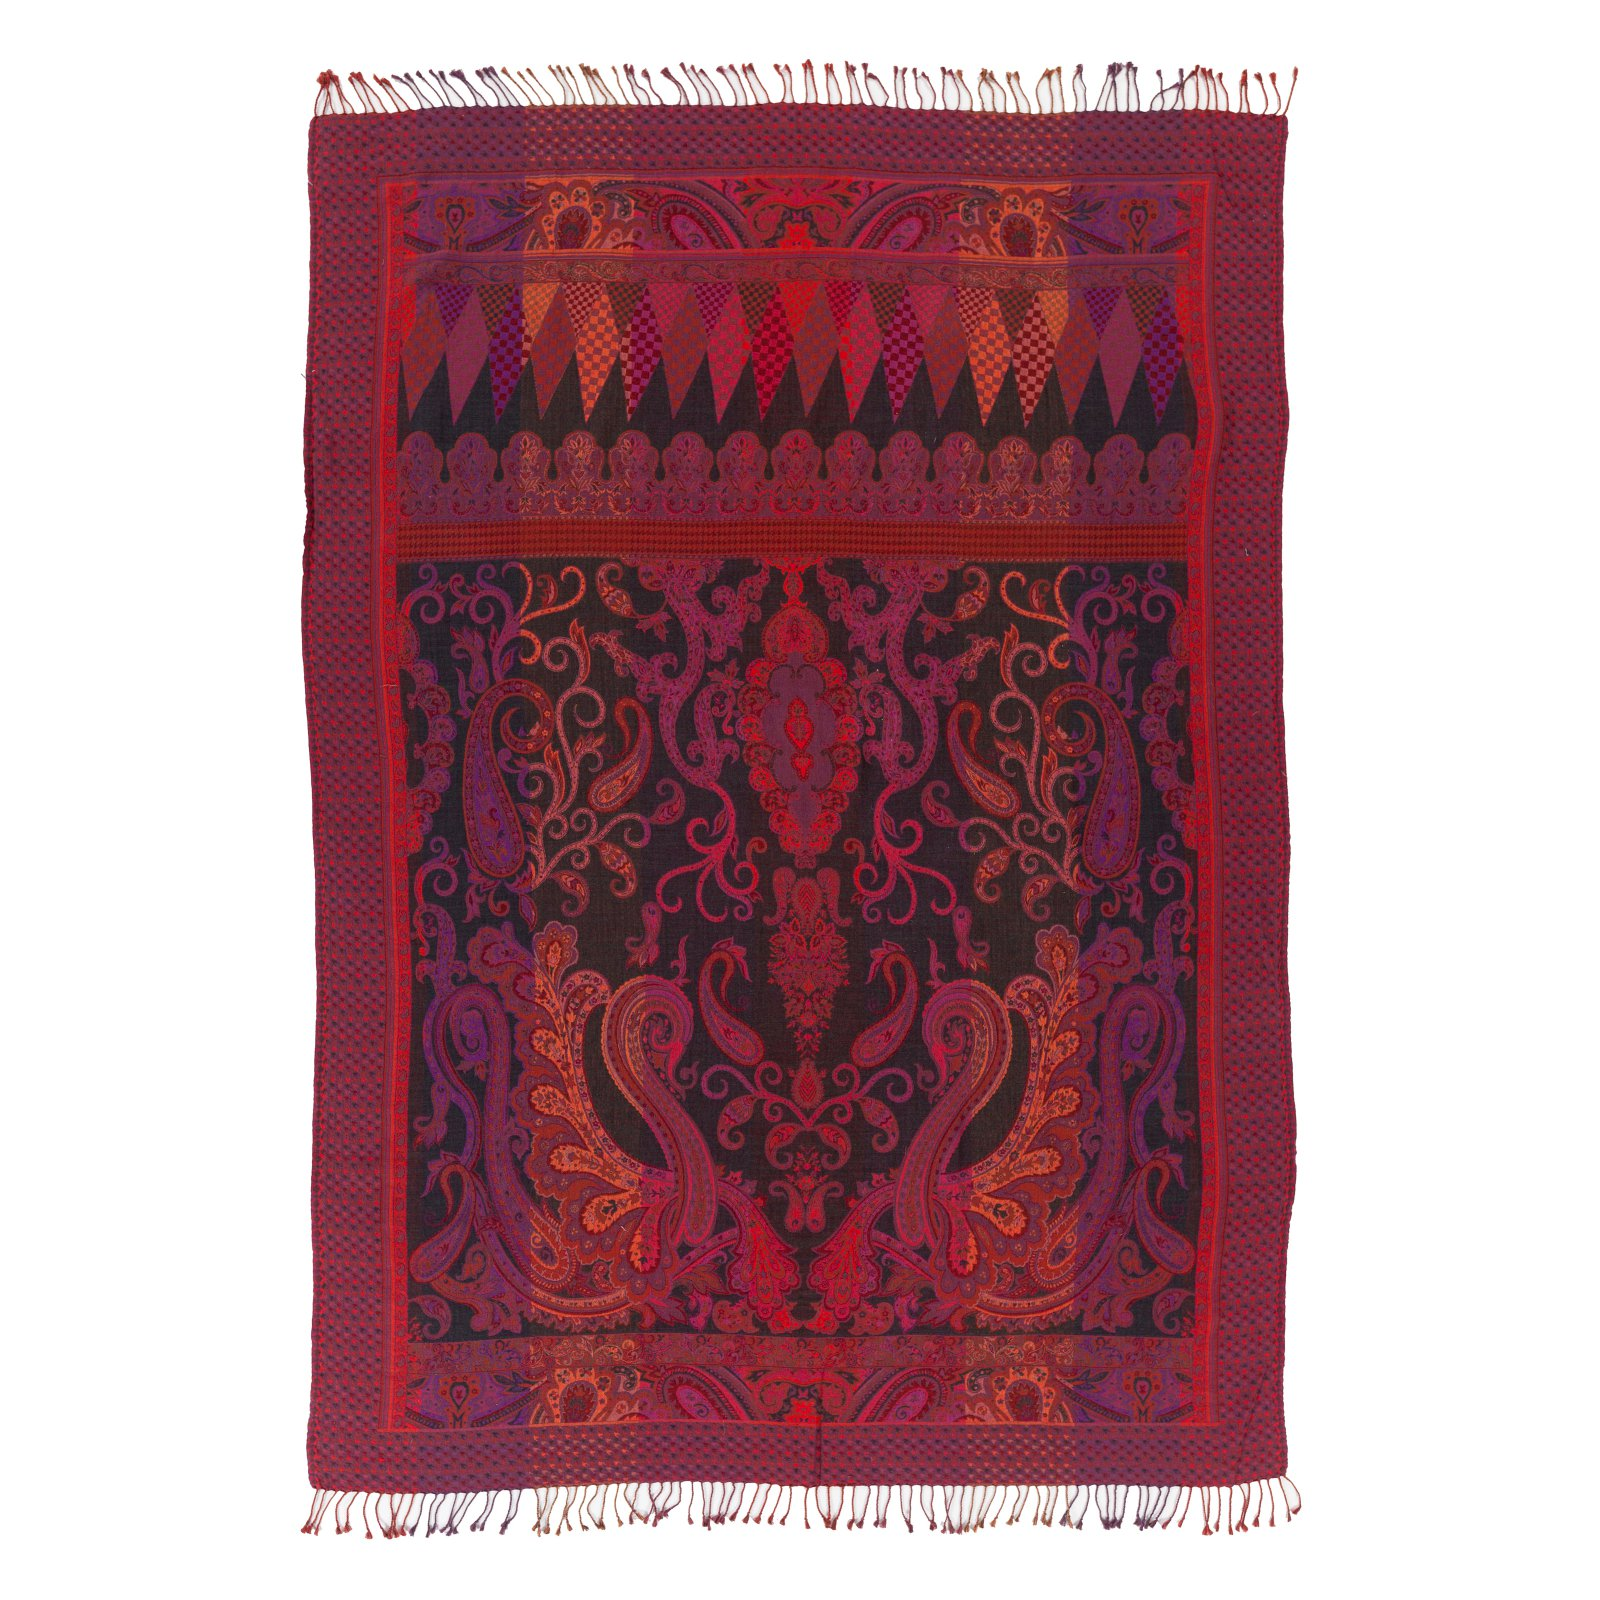 Surya Denali Damask Throw - 55L x 80W in.